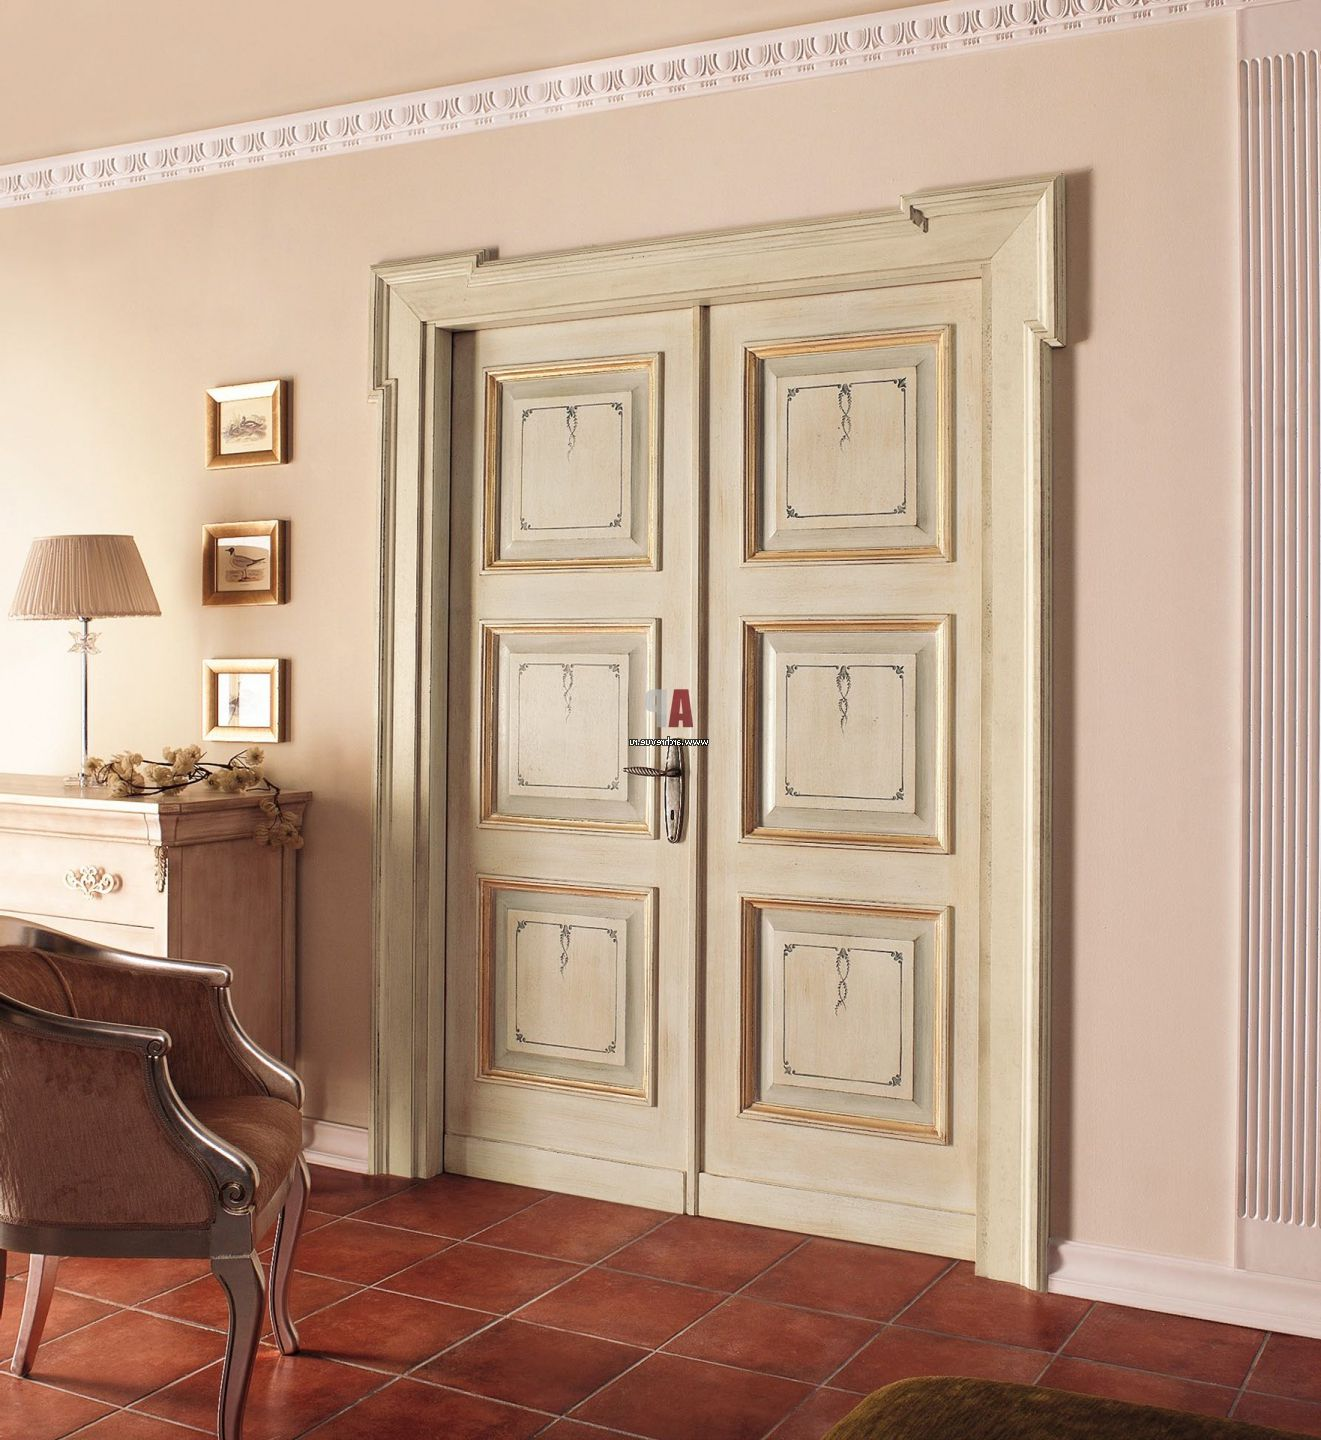 ... Massive Classic Double Wing Wooden Interior Door In Bright Colors ...